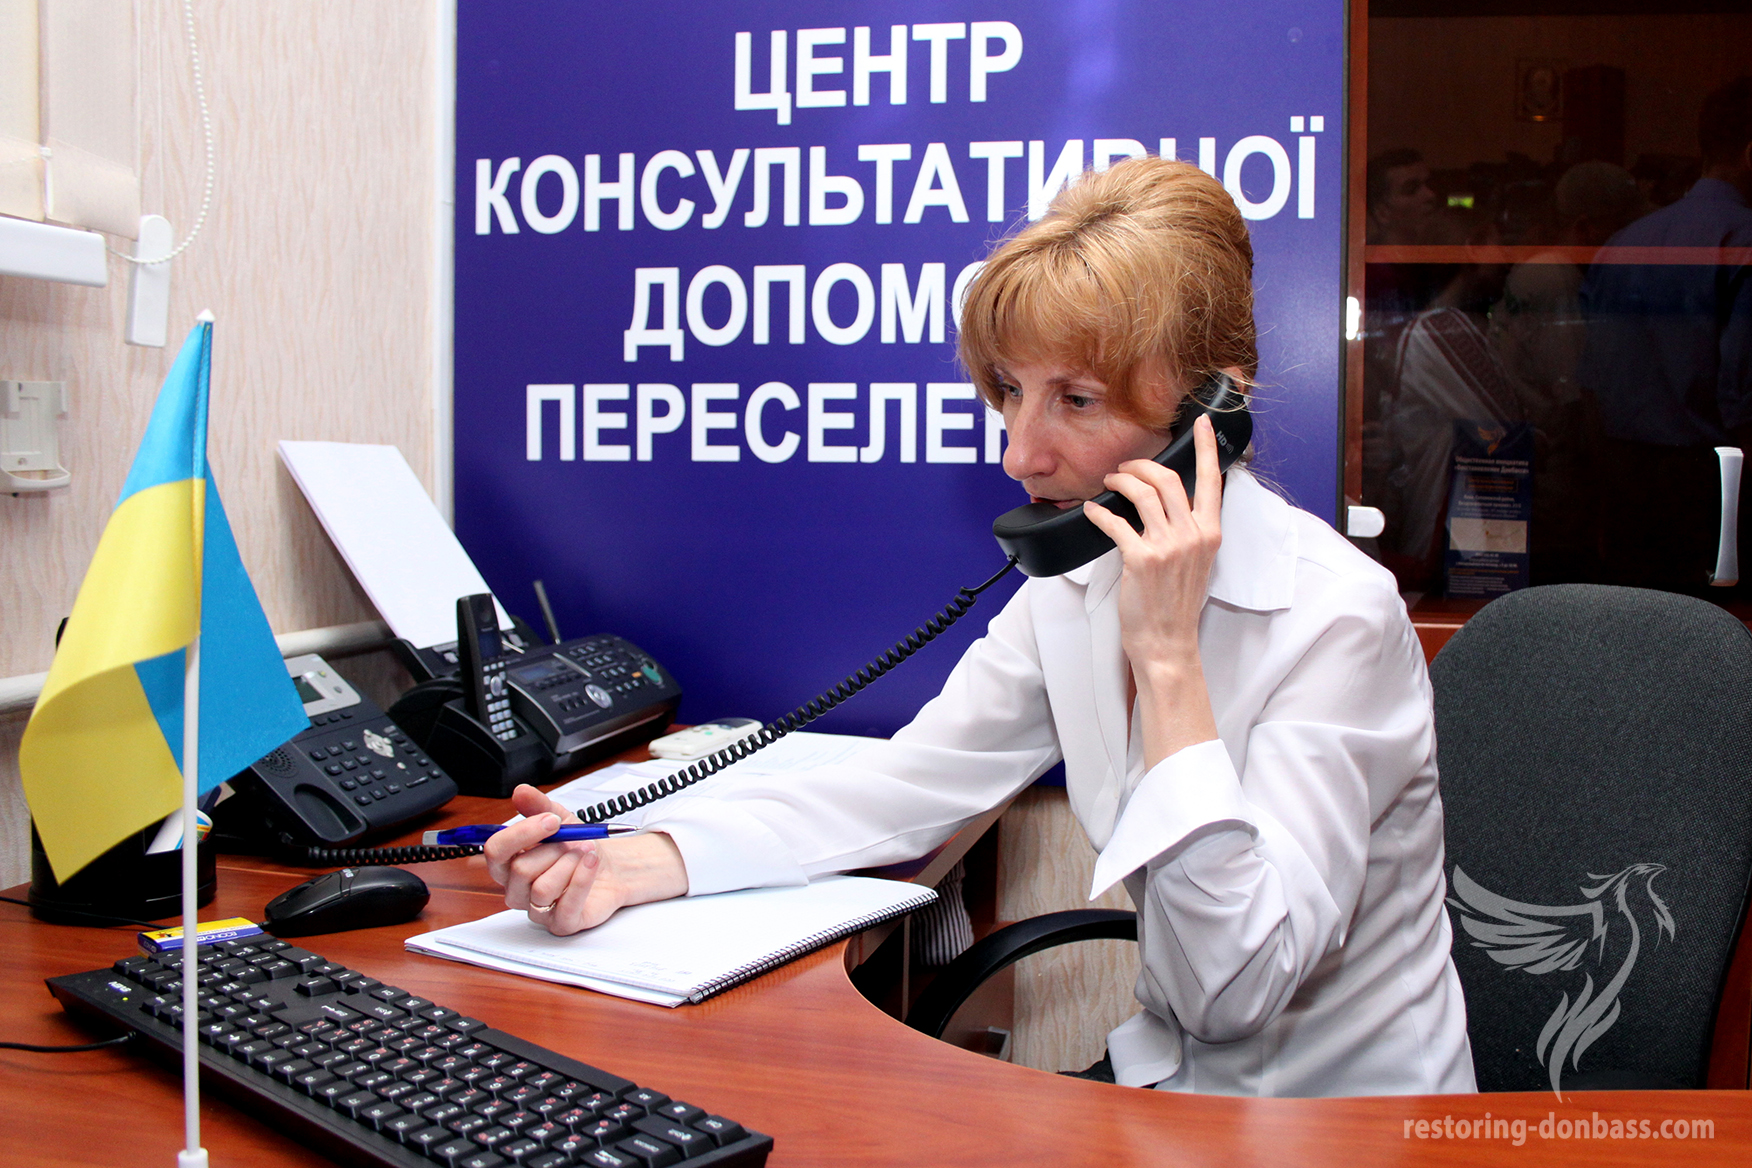 In Kiev IDPs get an opportunity to obtain free medical and psychological assistance